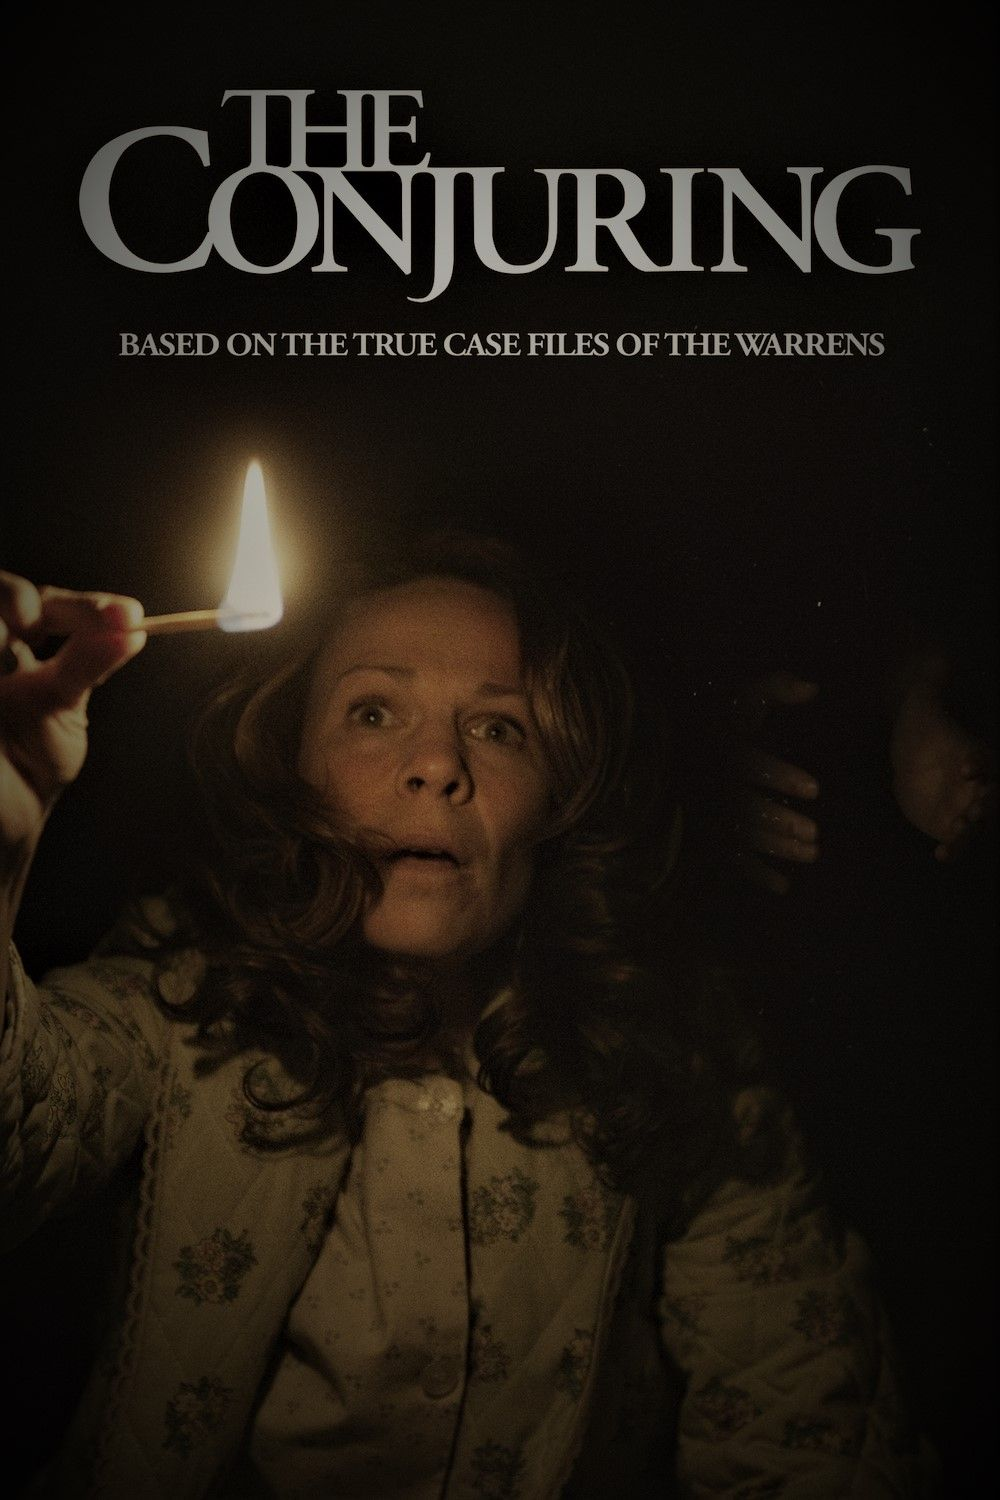 The Conjuring 2013 Poster With A Much Saturated And Contrasted Color The Conjuring Streaming Movies Free Streaming Movies